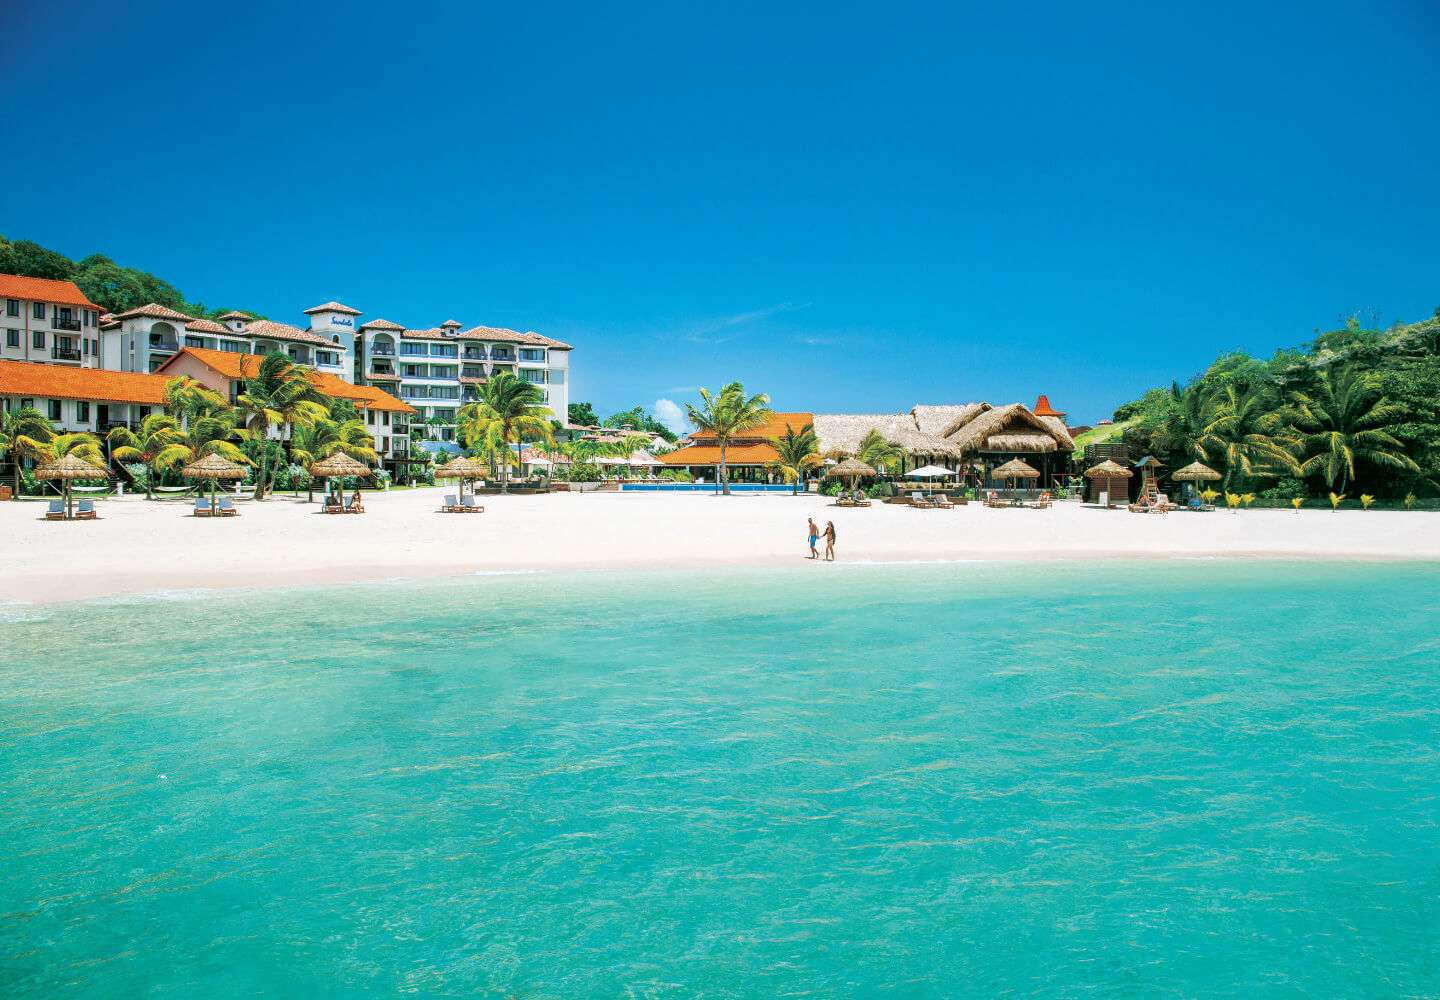 Image of Sandals LaSource Grenada Resort & Spa, Saint George's, Grenada